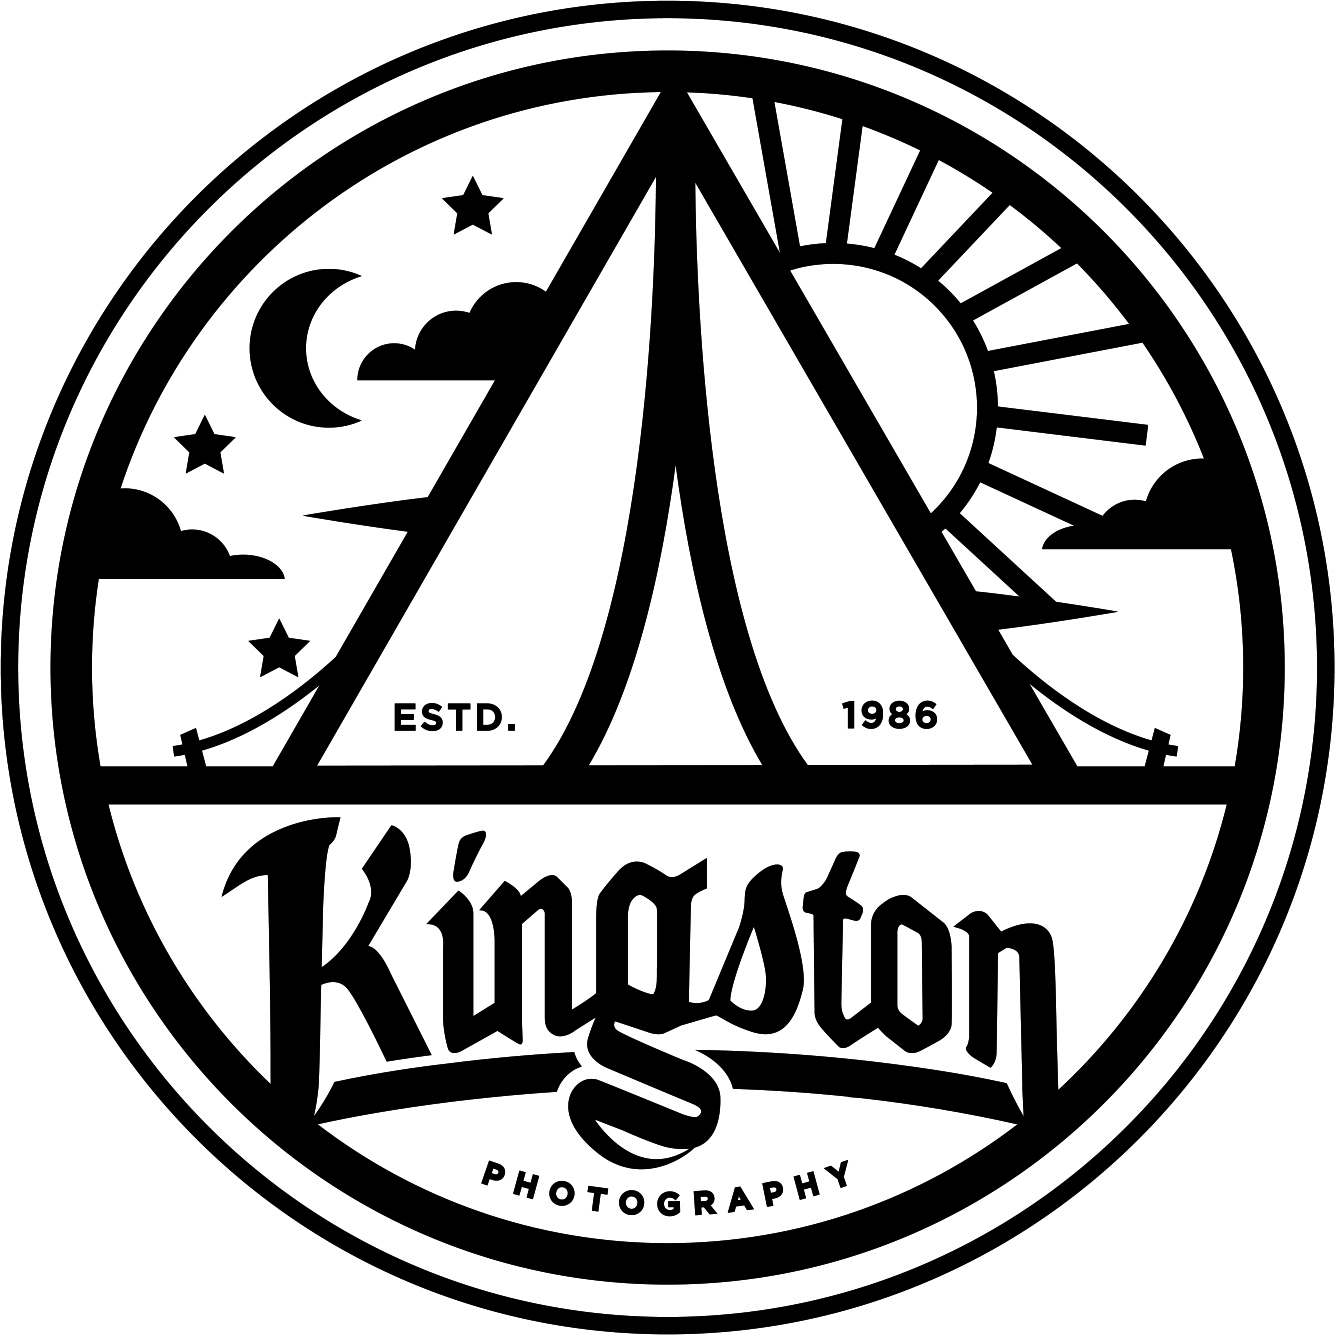 Kingston Photography